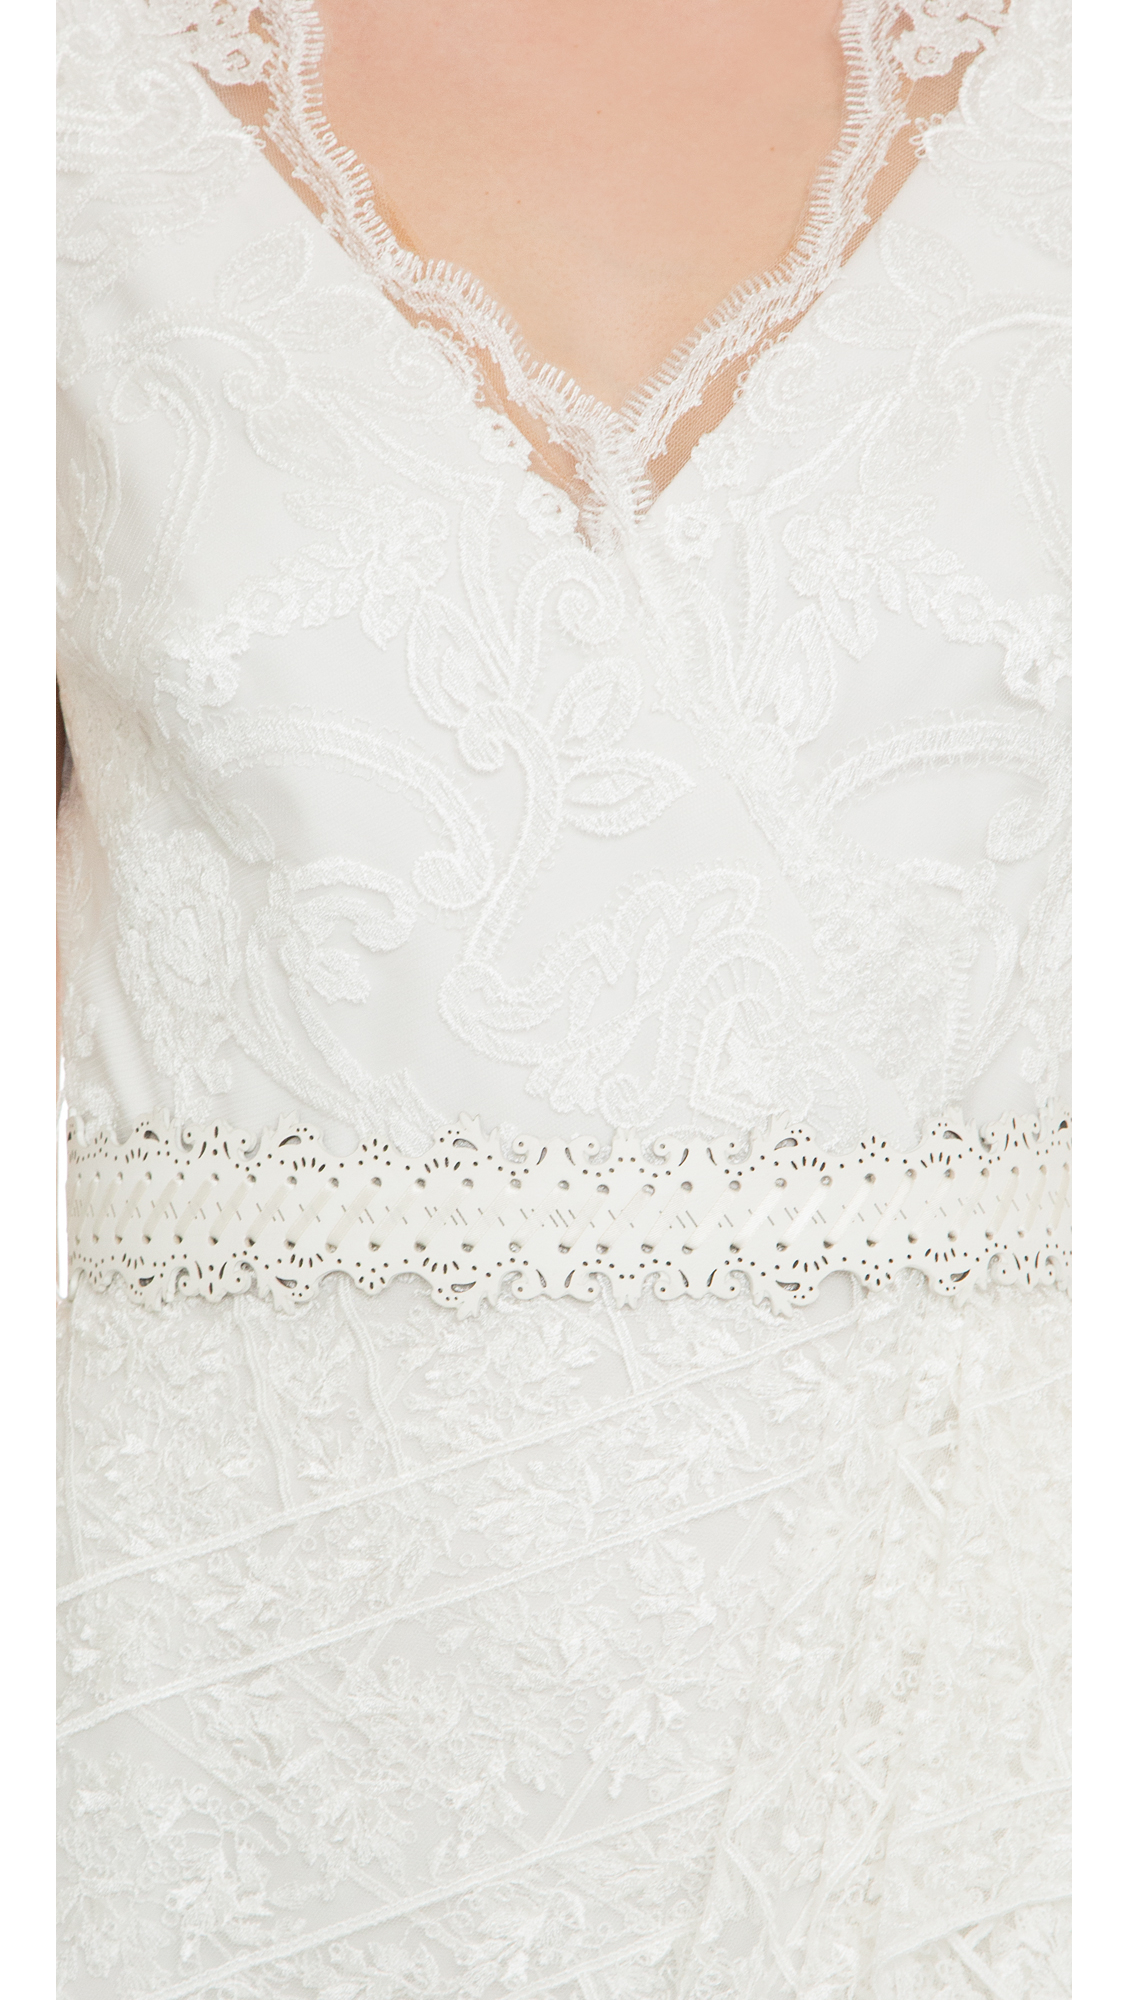 7596f460 Gallery. Previously sold at: Shopbop · Women's White Cocktail Dresses